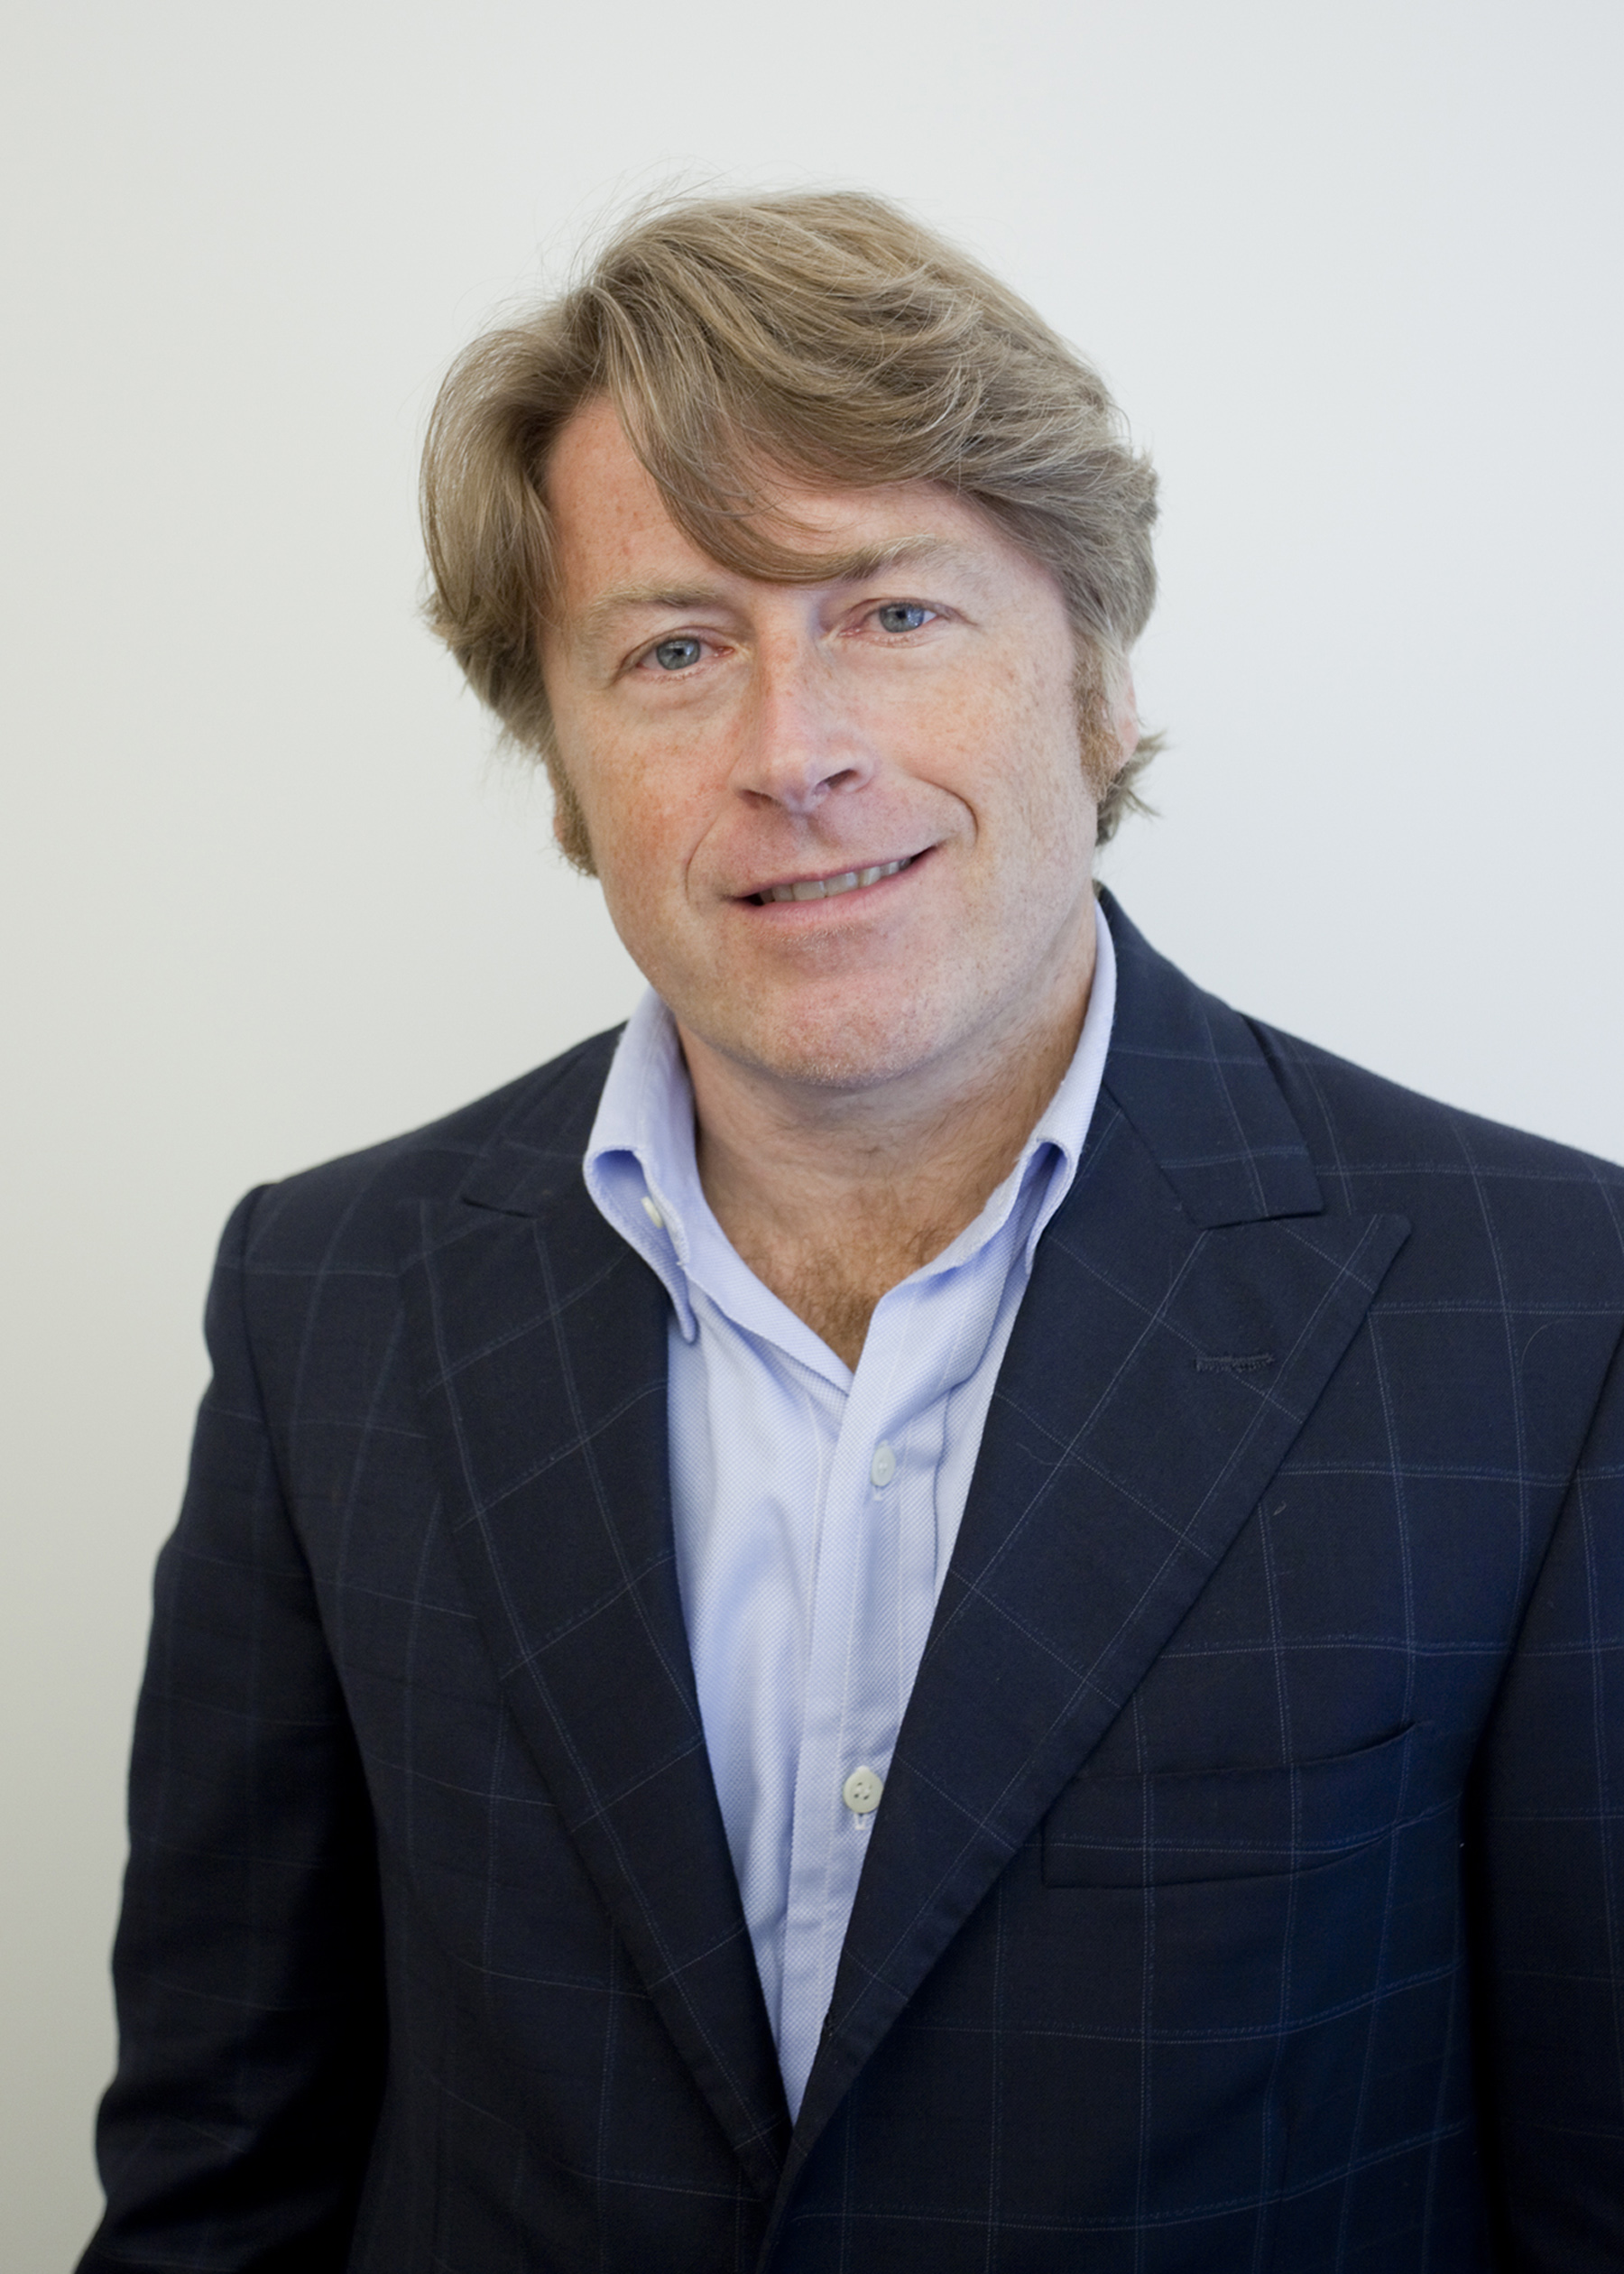 University of Utah's new Chief Marketing and Communications Officer (CMCO) William Warren